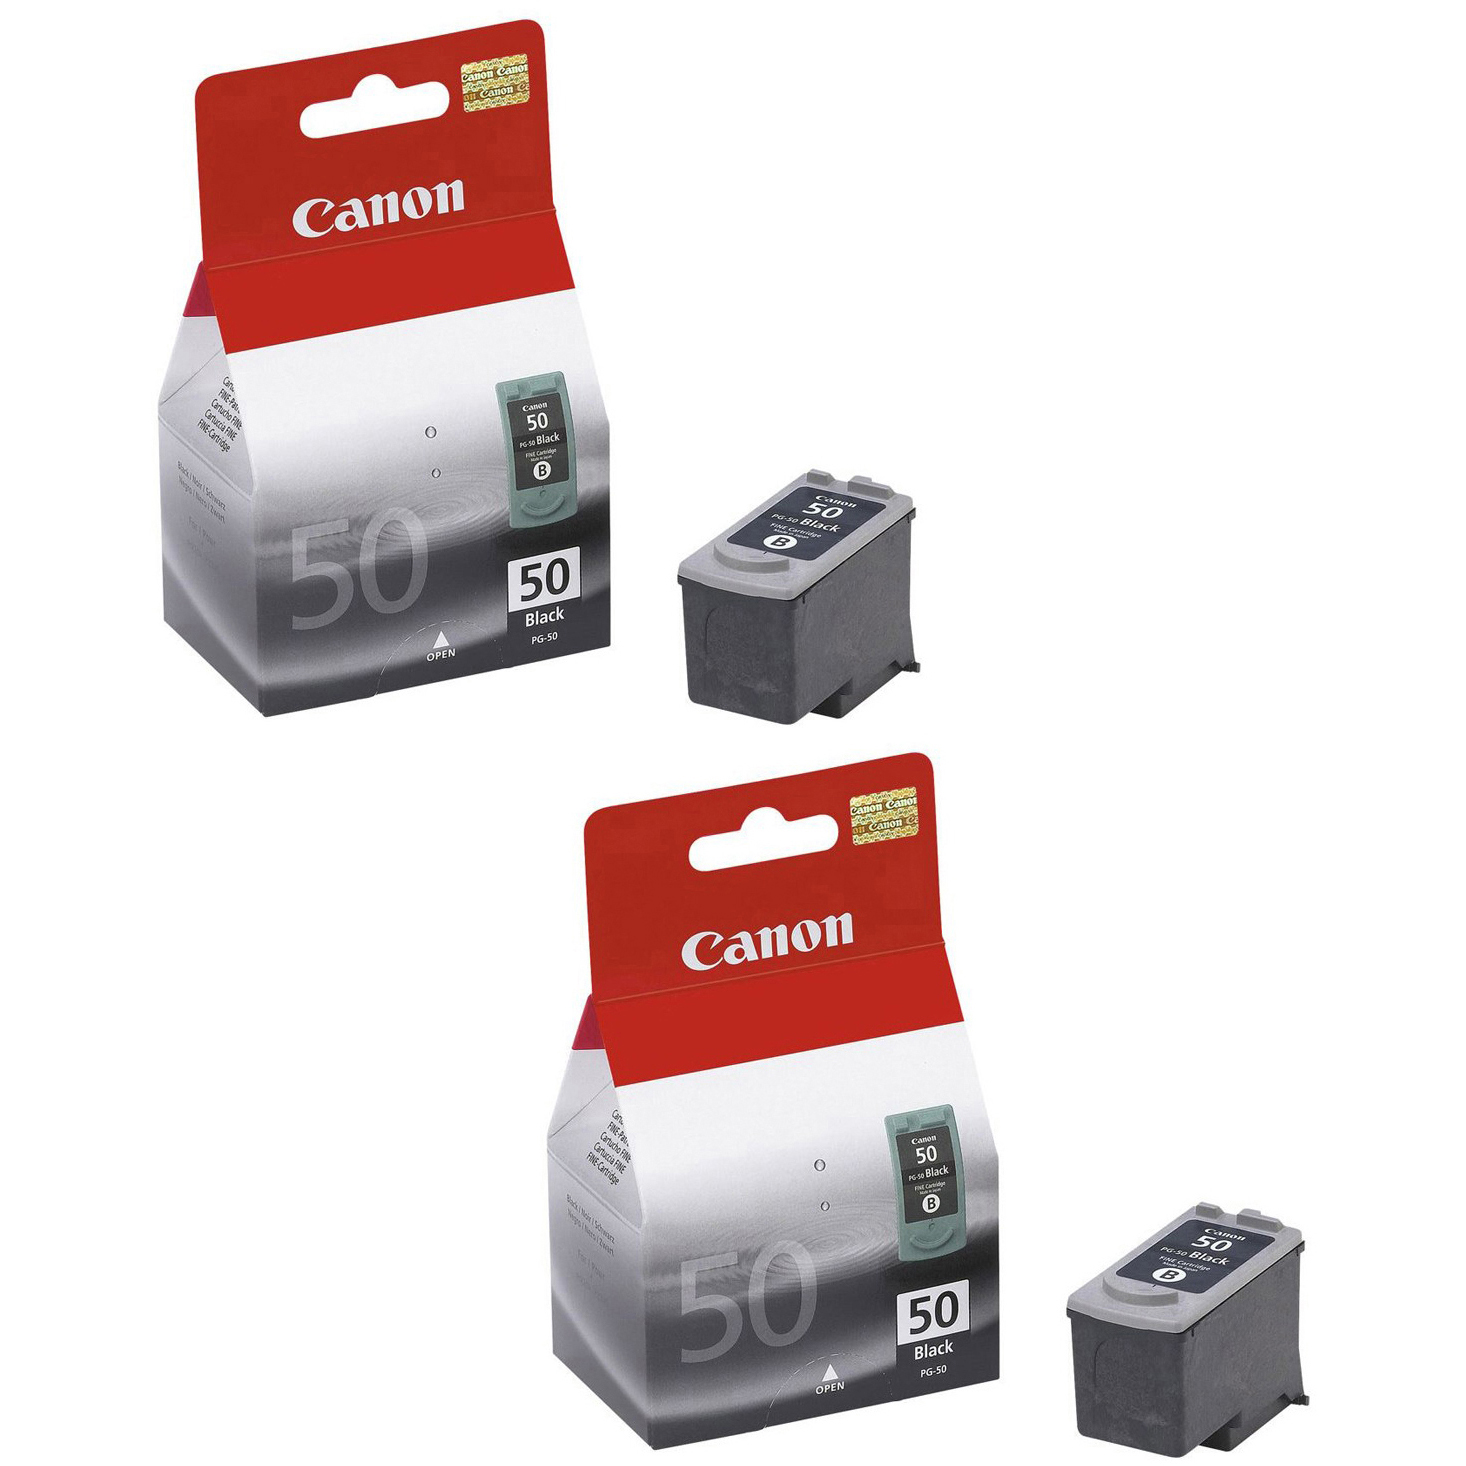 Original Canon PG-50 Black Twin Pack High Capacity Ink Cartridges (0616B001)